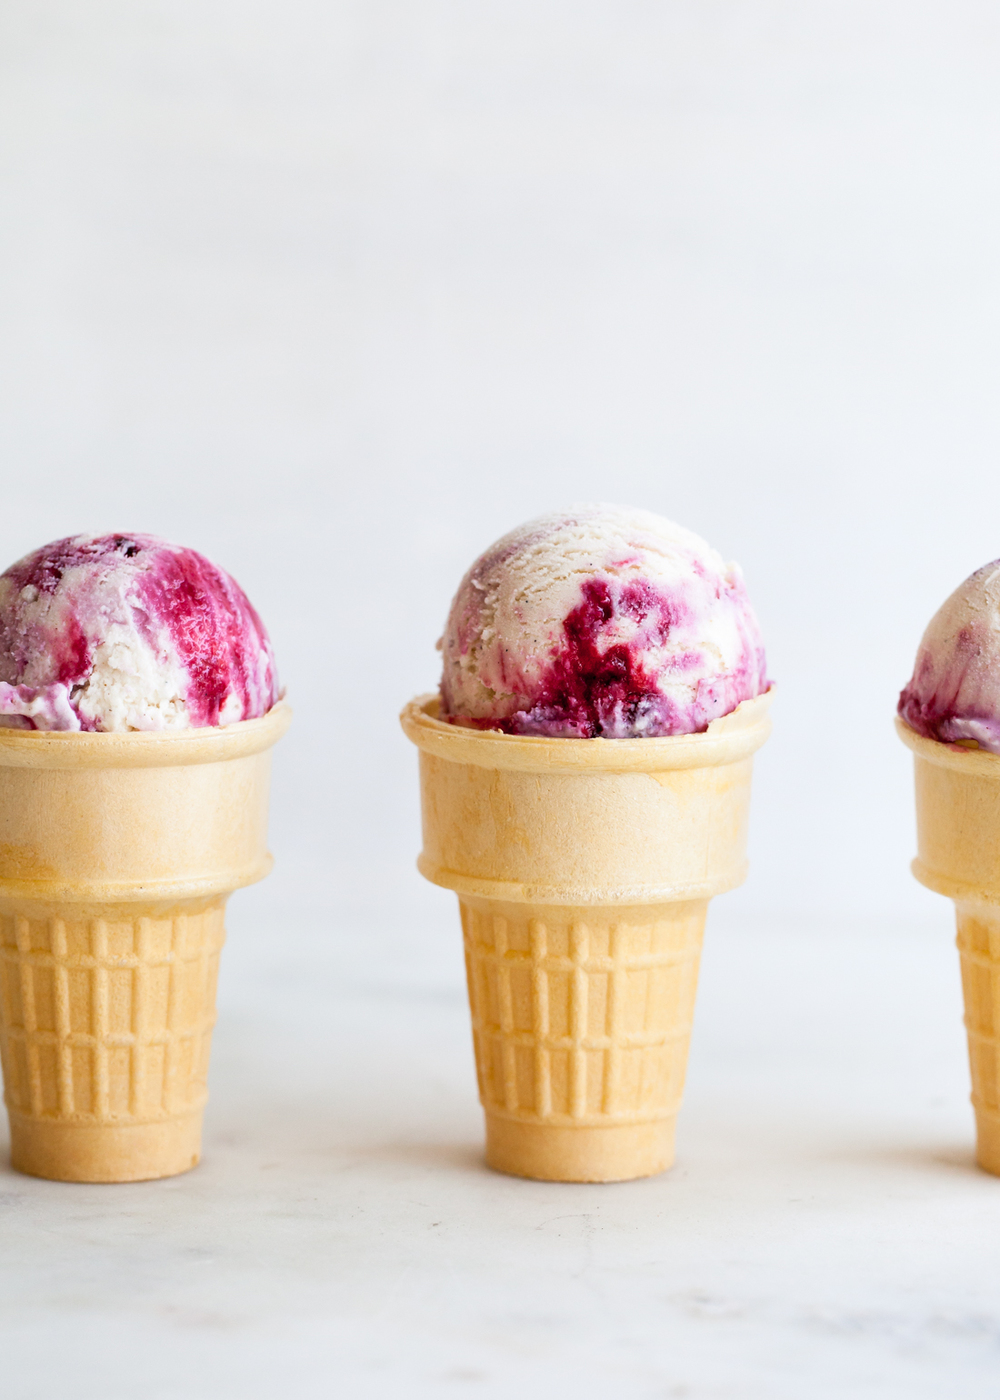 Blackberry ice cream recipe with cinnamon and mascarpone